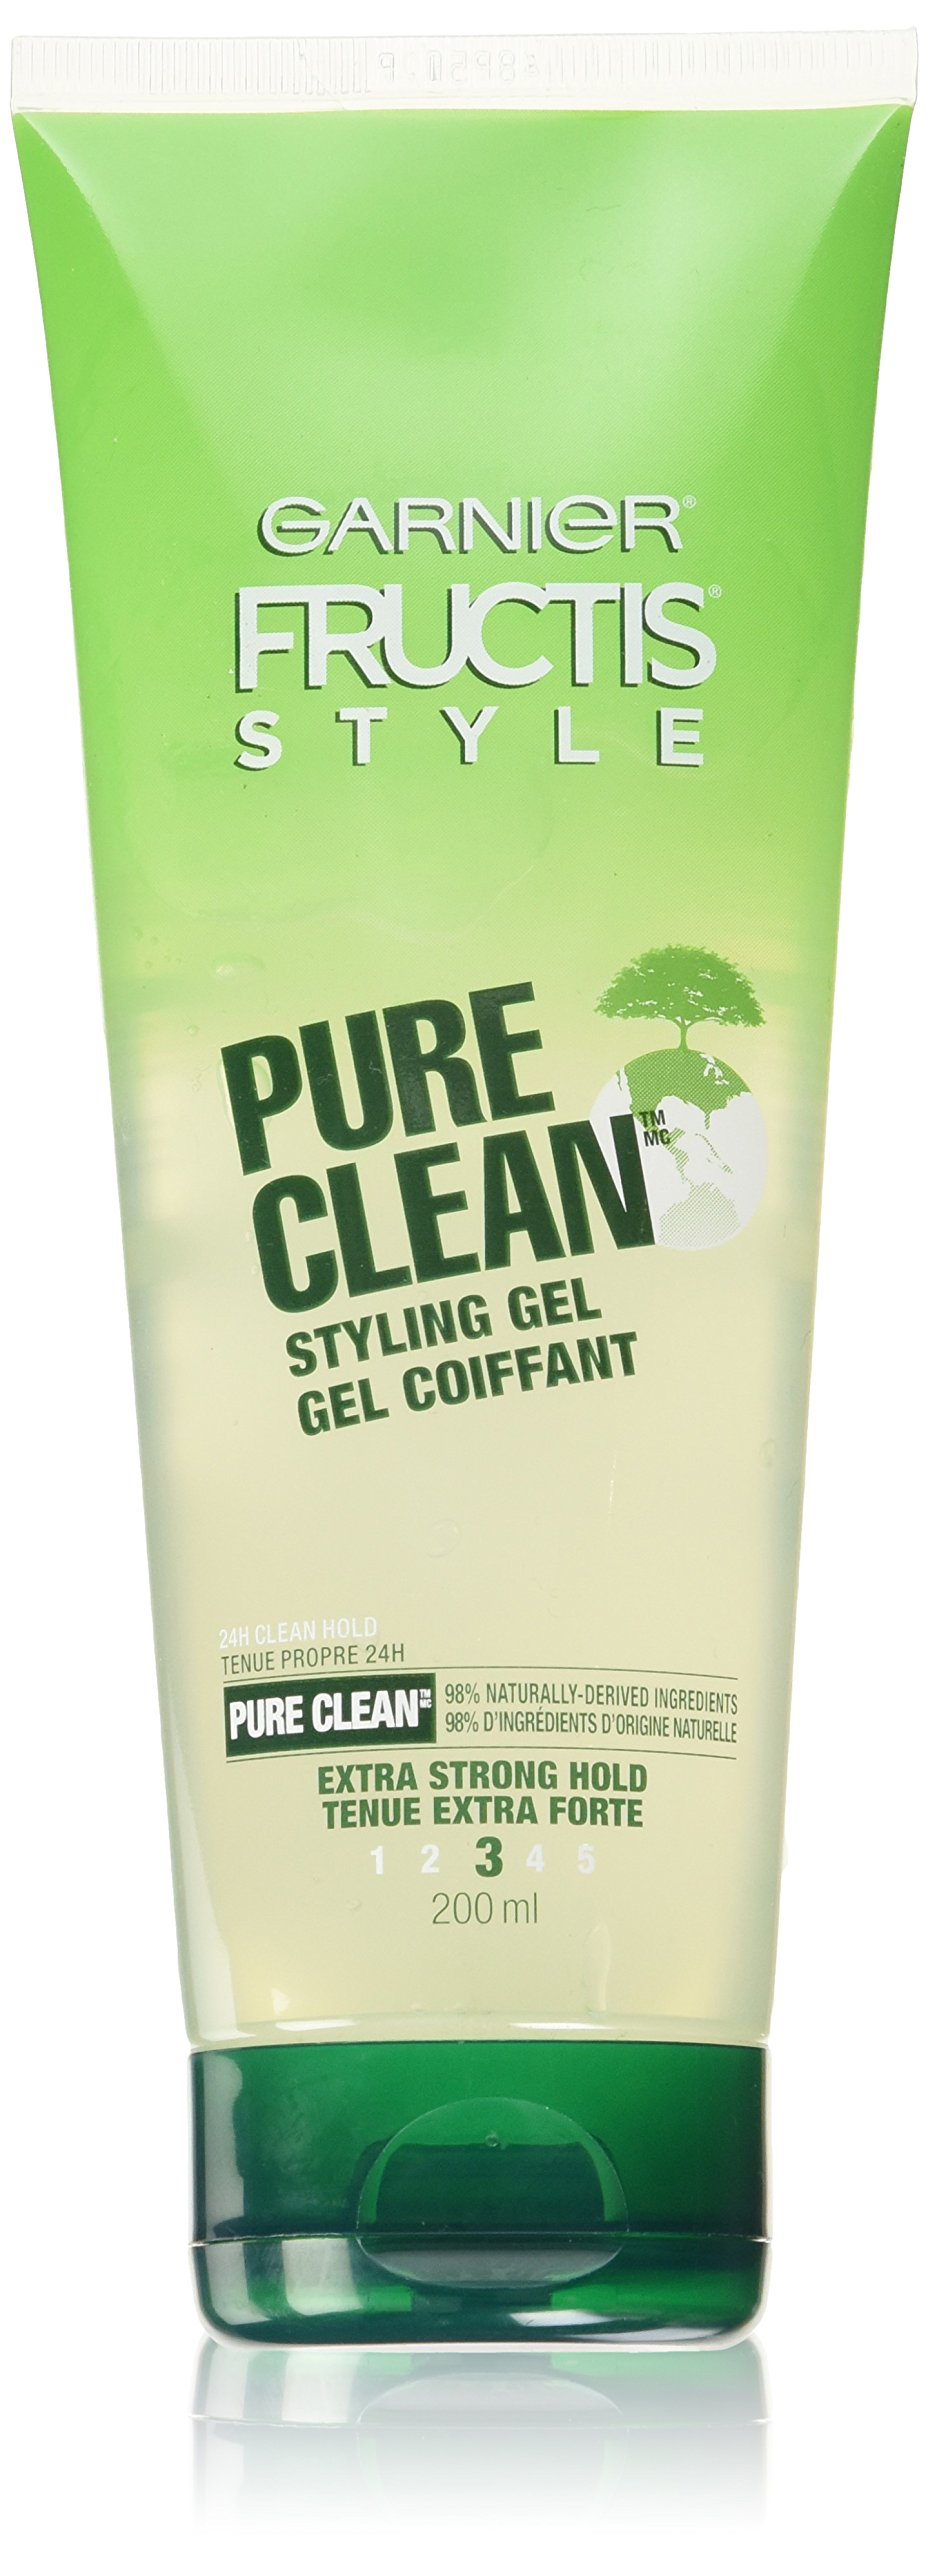 Garnier Fructis Style Pure Clean Styling Gel 6.80 oz